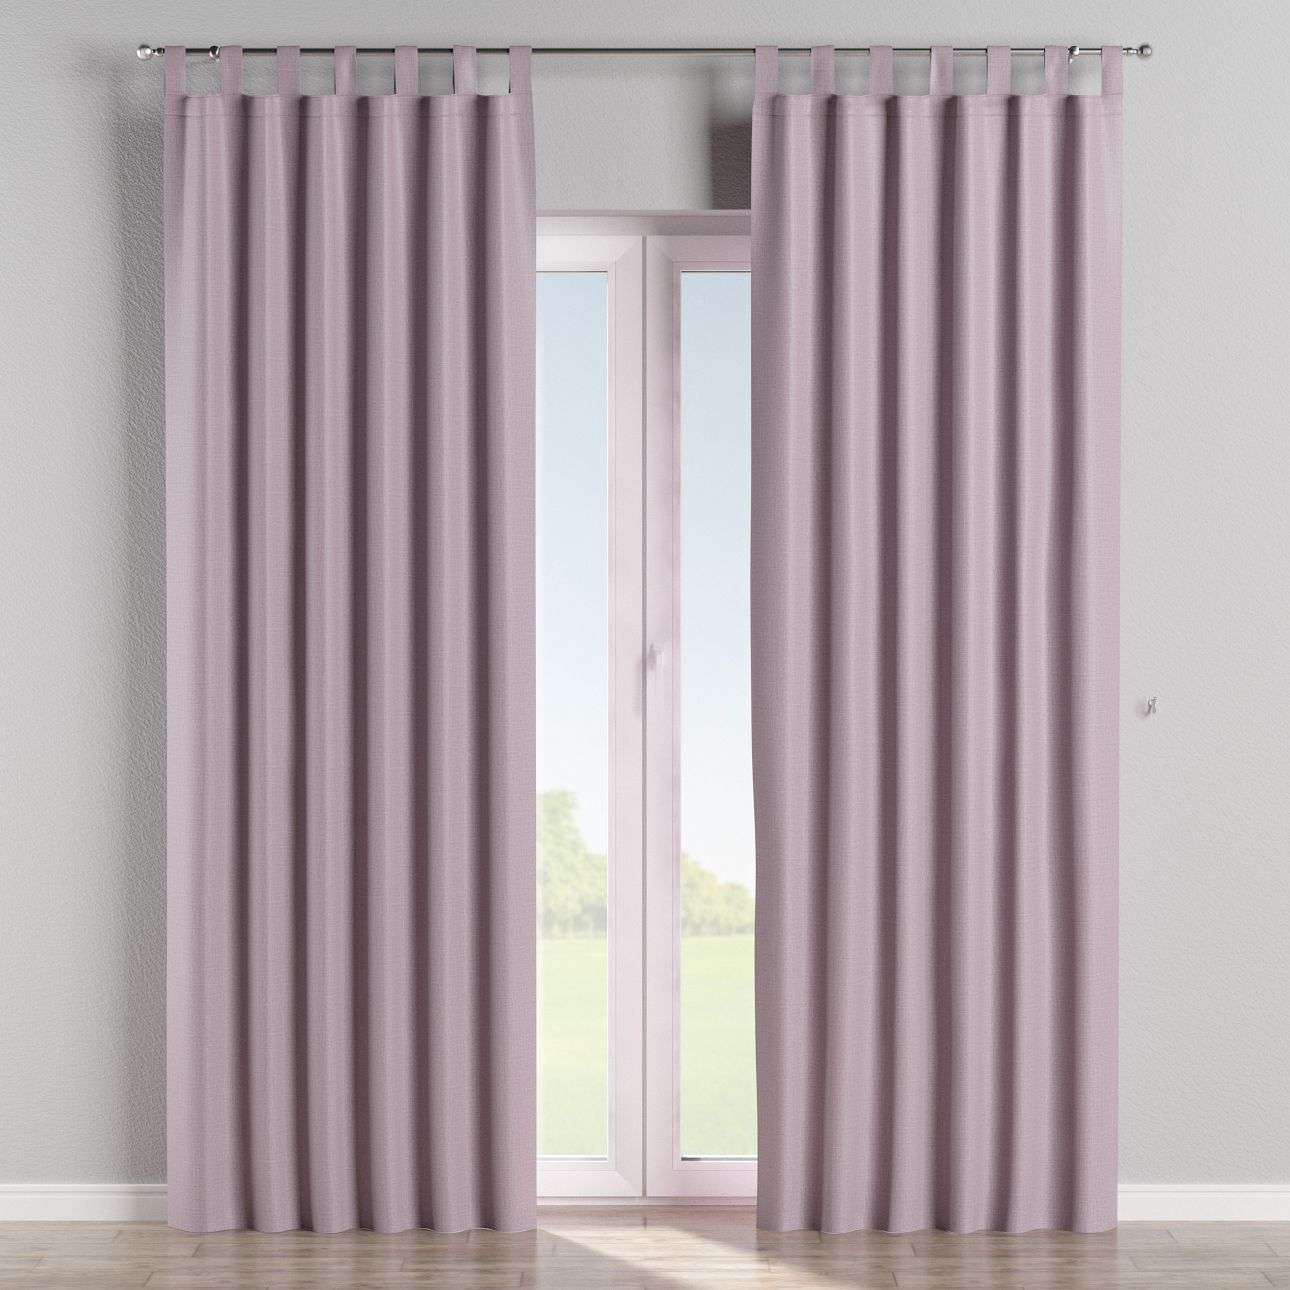 Blackout Tab Top Curtains 140 X 260 Cm (55 X 102 Inch) In Collection